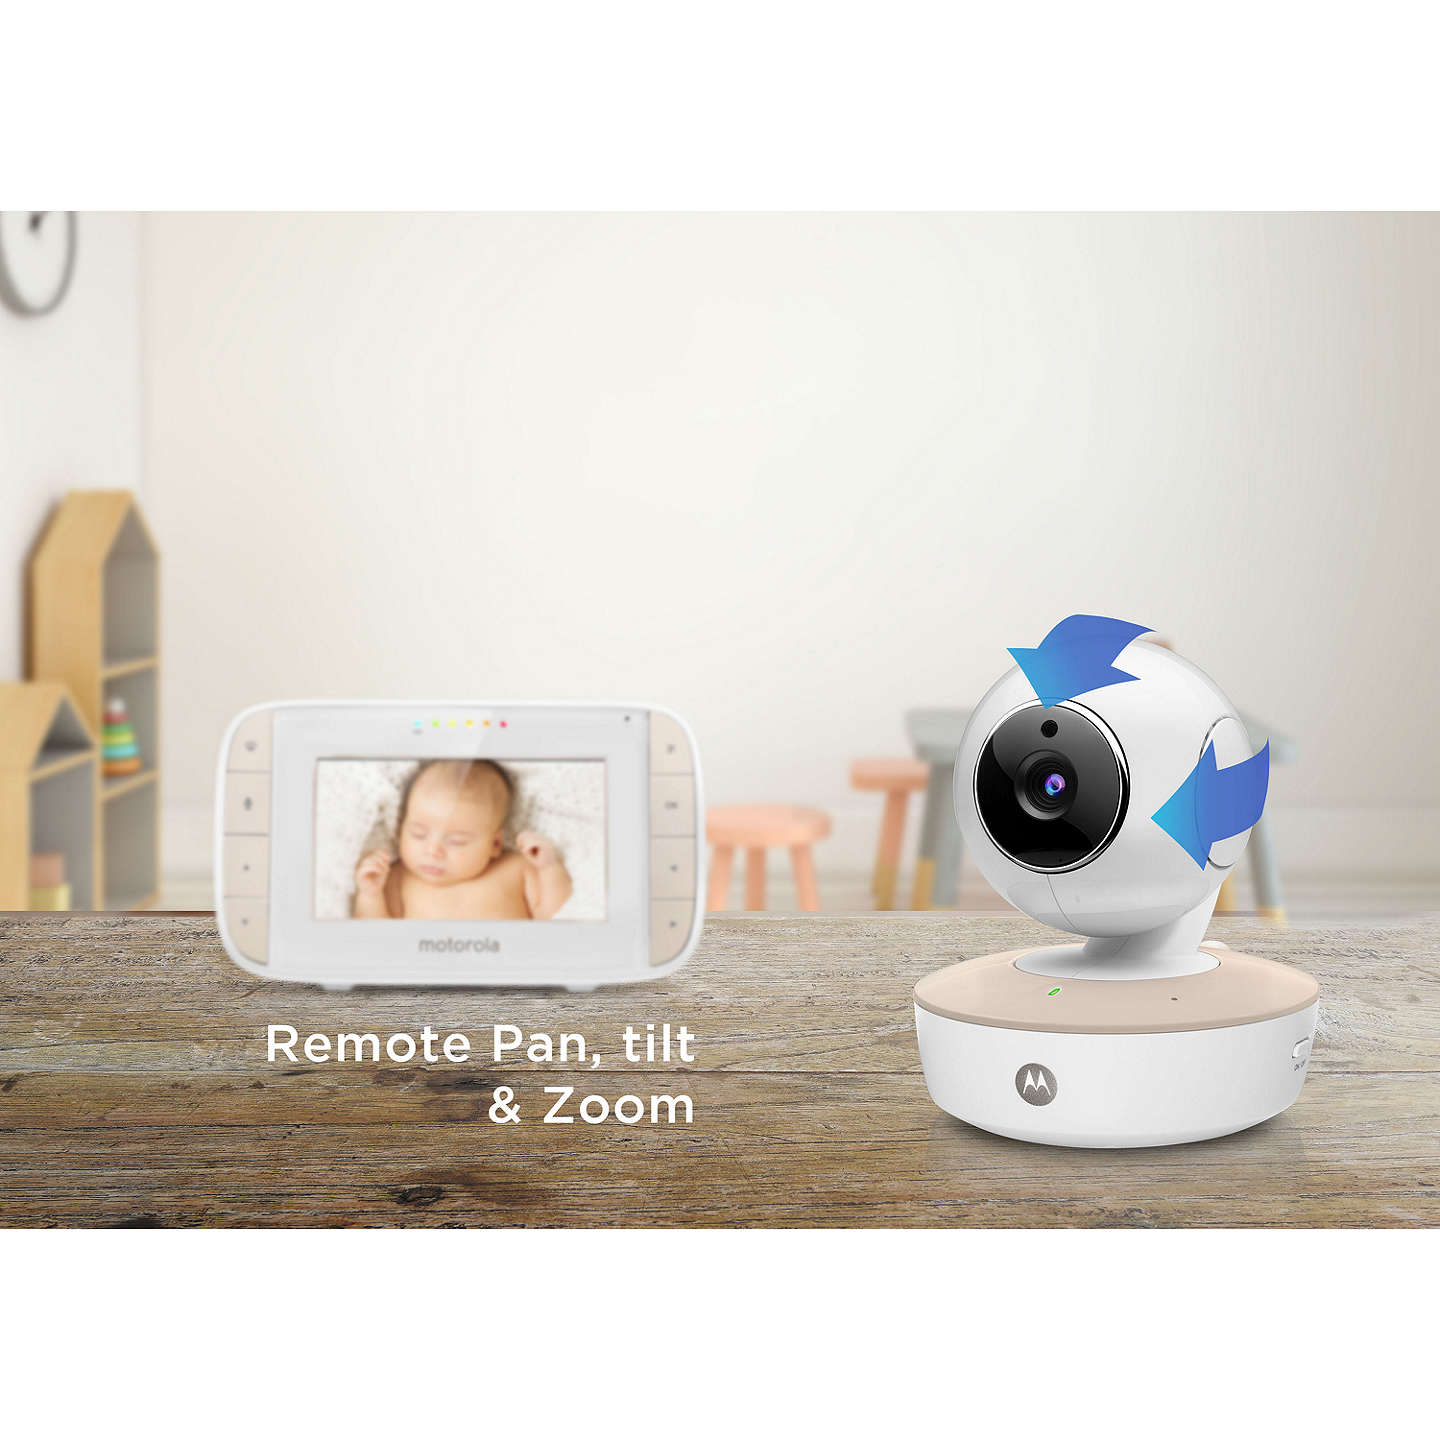 BuyMotorola MBP44 Digital Audio and Video Baby Monitor Online at johnlewis.com